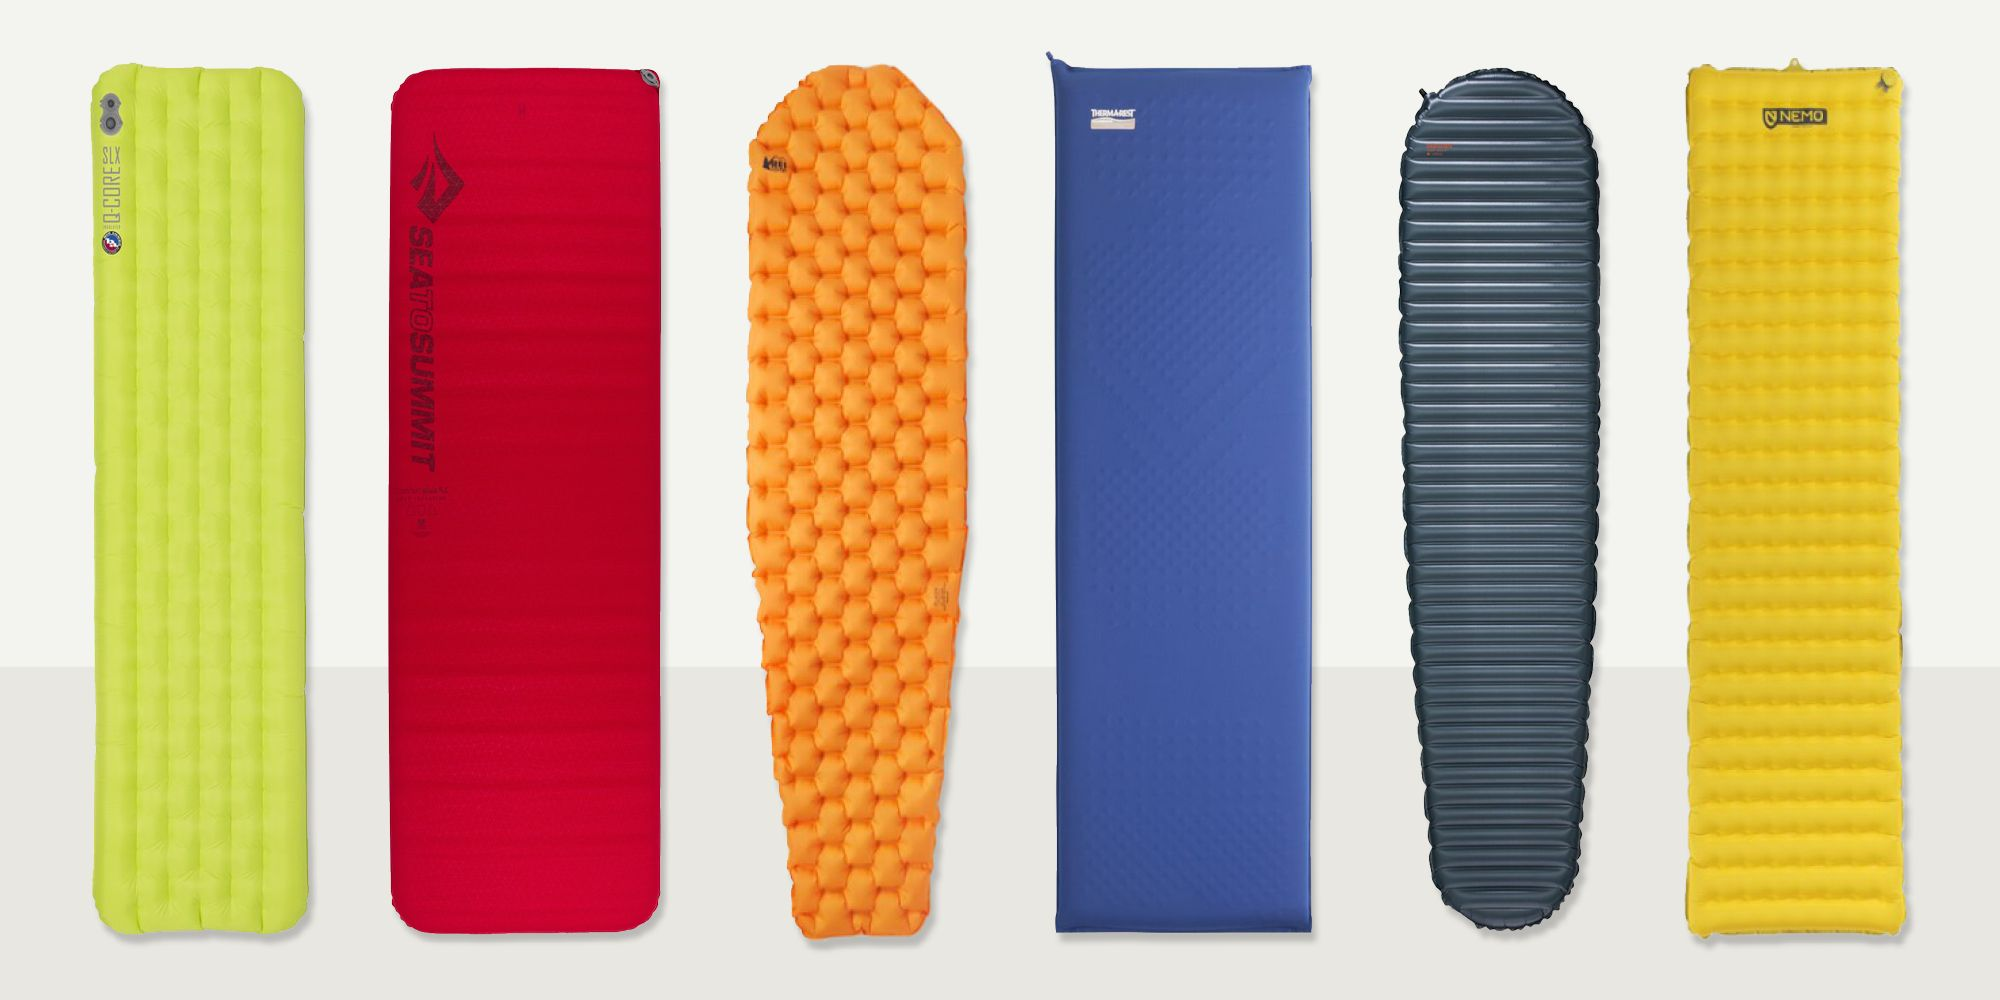 Best Sleeping Pads 2019 | Sleeping Pads for Camping